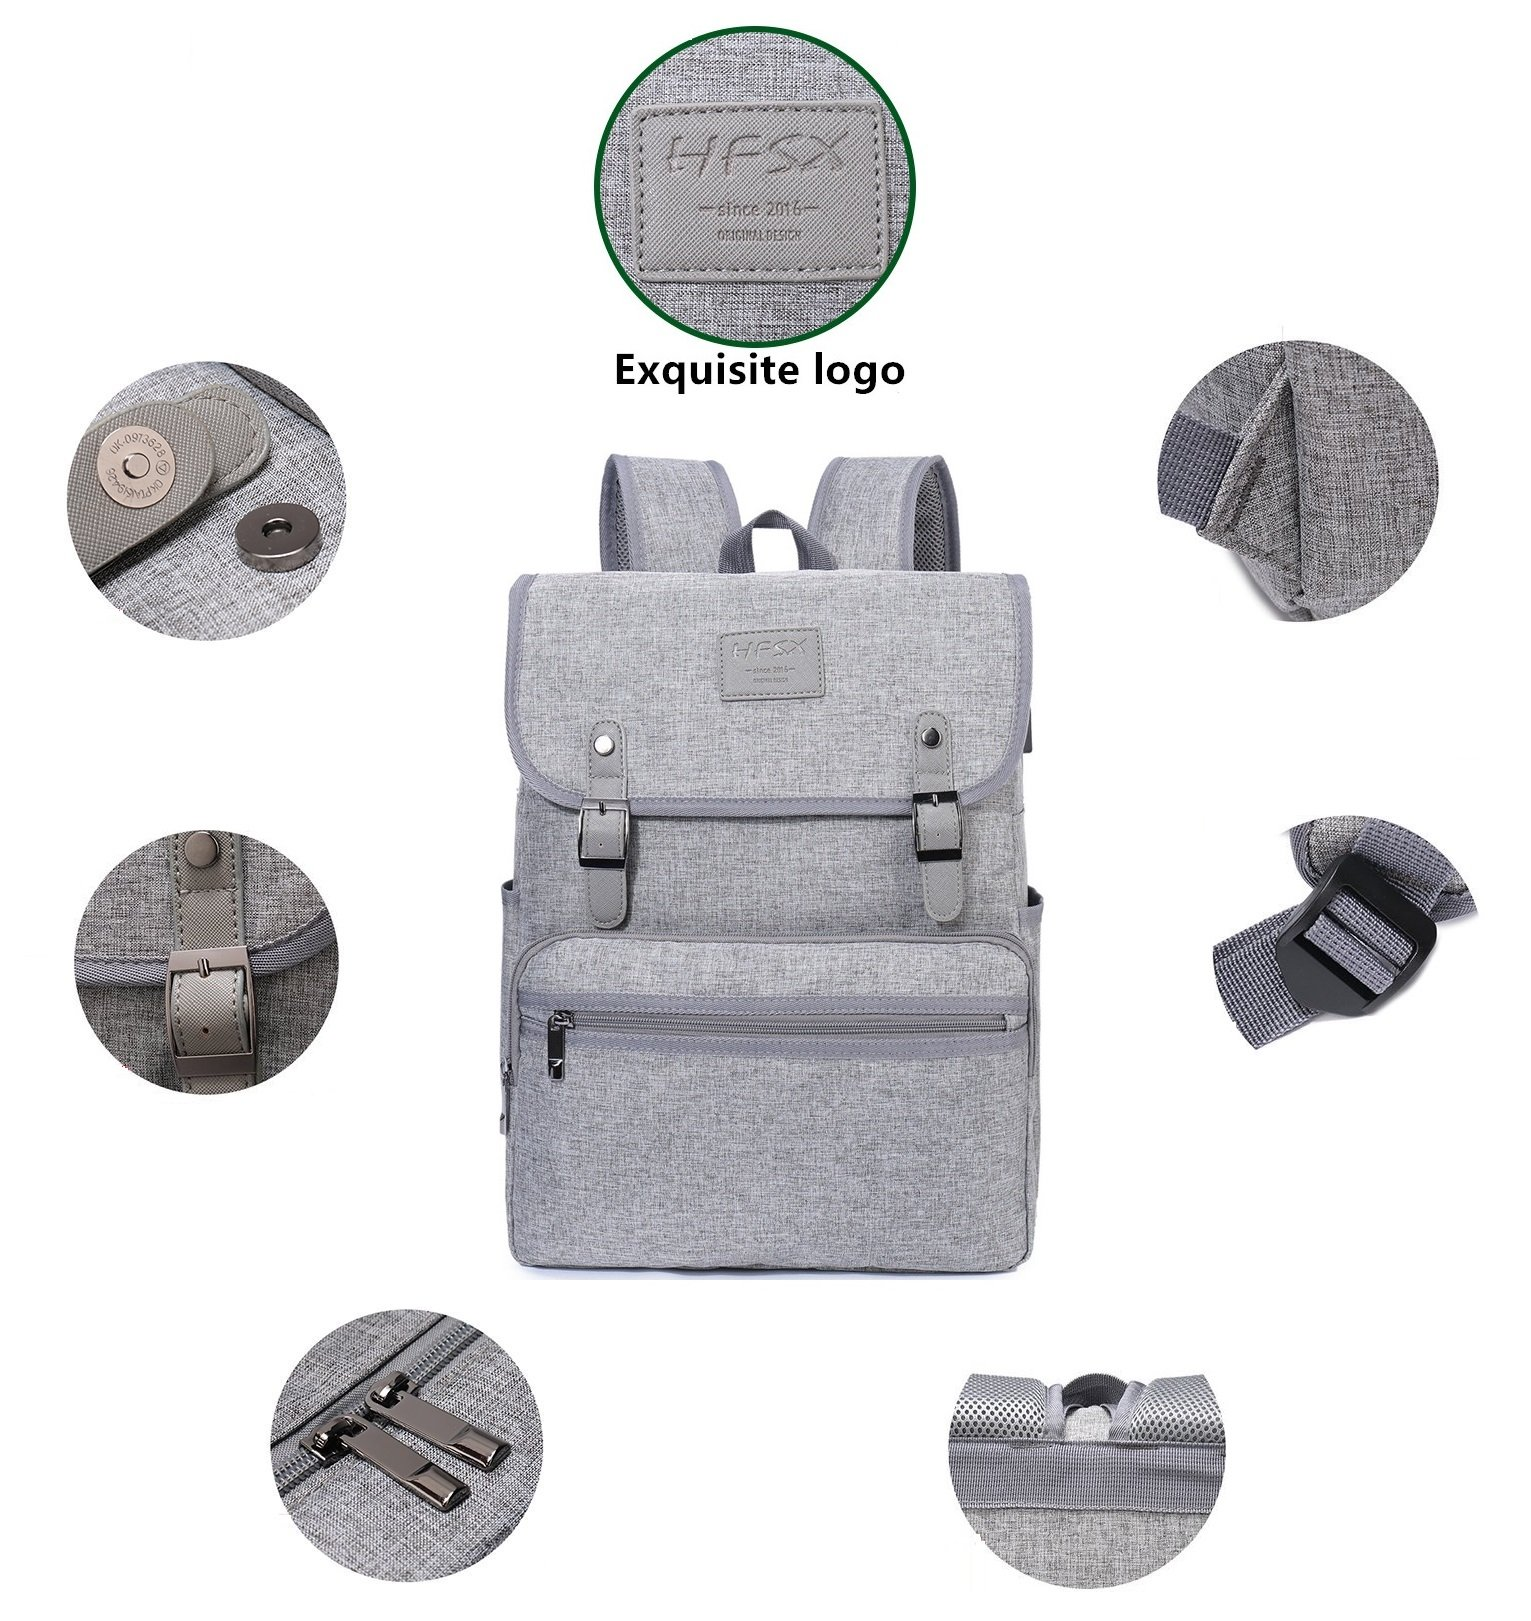 Laptop Backpack Men Women Business Travel Computer Backpack School College Bookbag Stylish Water Resistant Vintage Backpack with USB Port Fashion GREY Fits 15.6 Inch Laptop and Notebook by HFSX (Image #3)